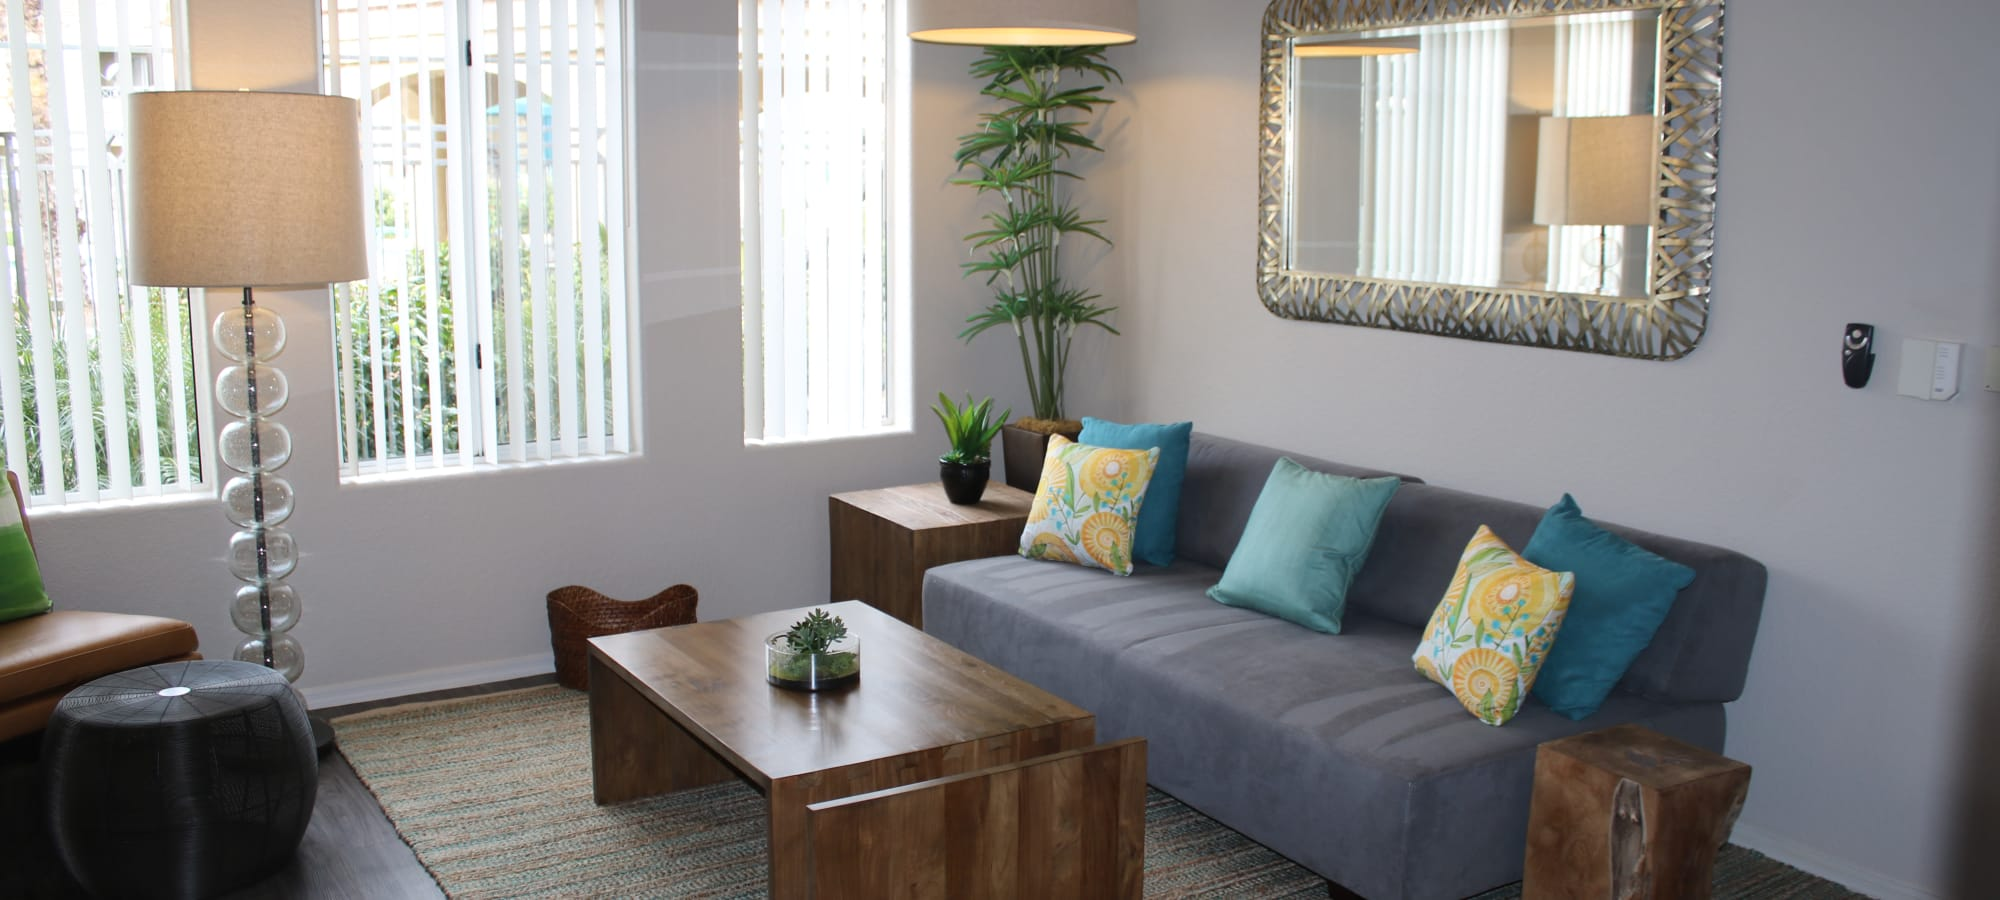 Furnished living room in a model home at Mira Santi in Chandler, Arizona